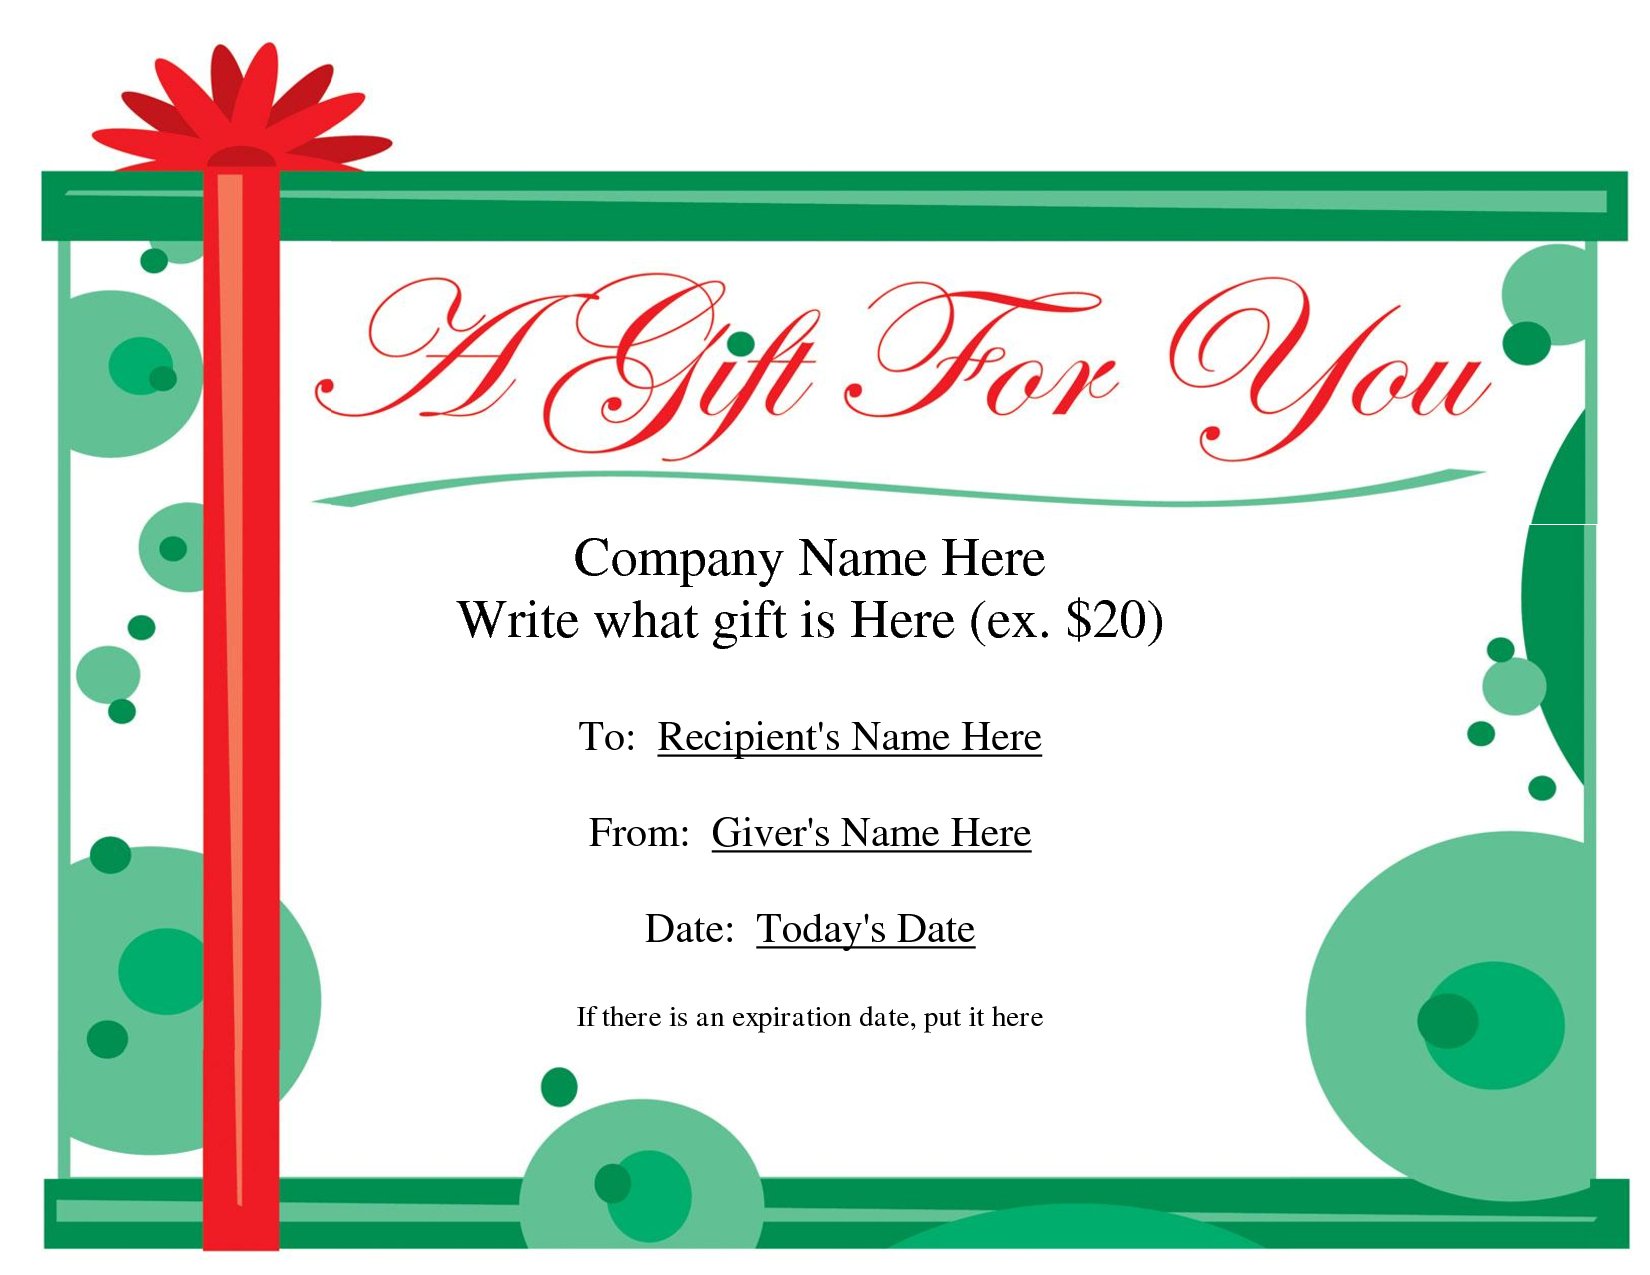 Free Christmas Gift Certificate Templates | Ideas For The House - Free Printable Gift Cards